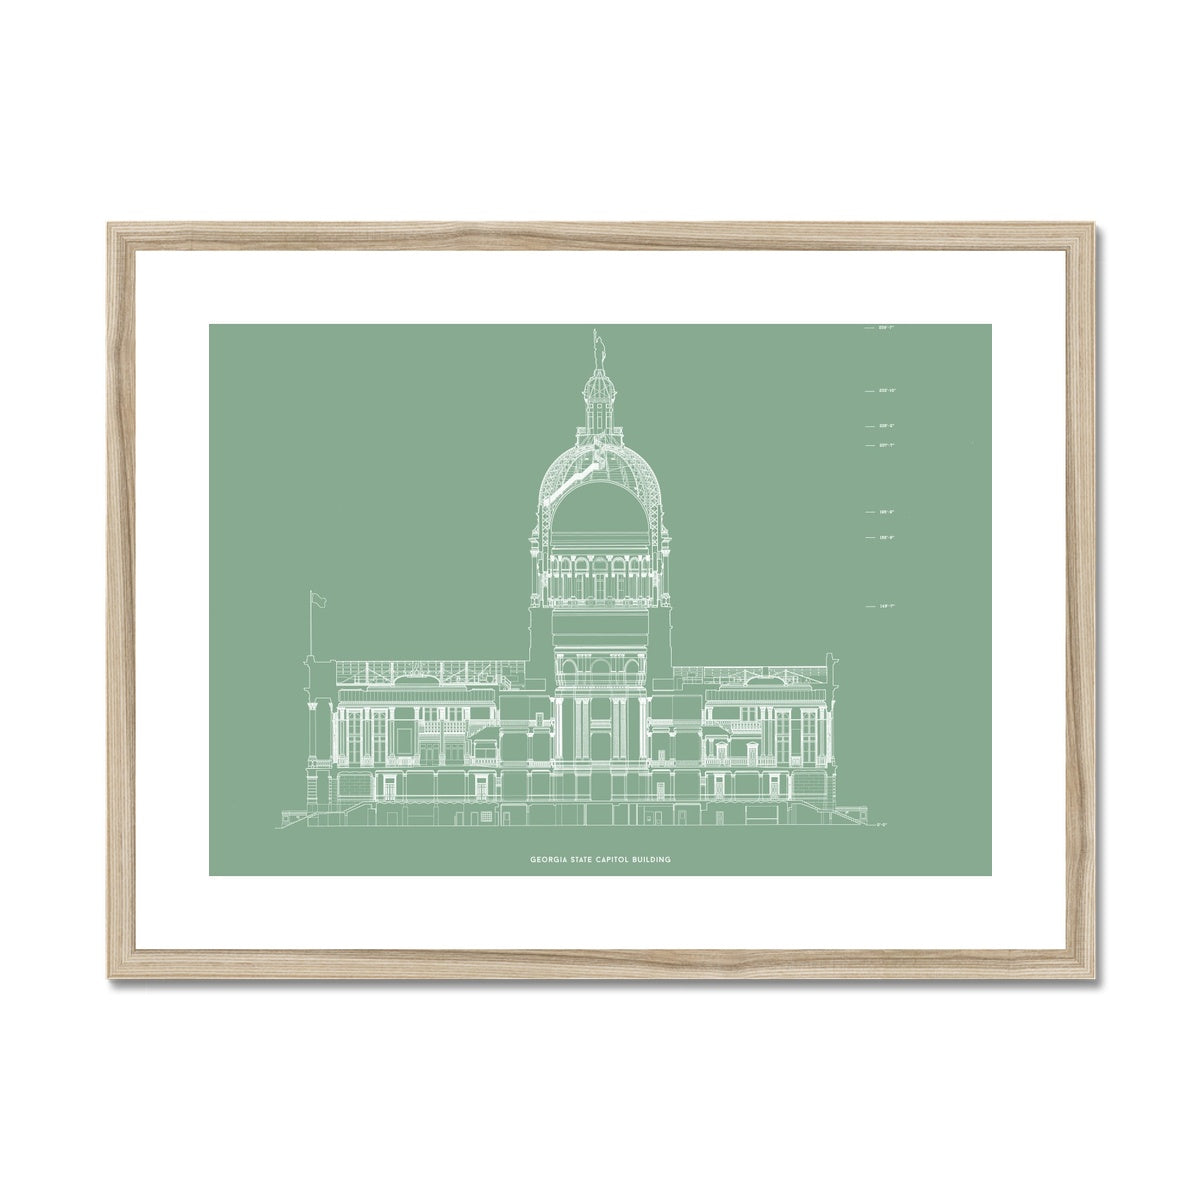 The Georgia State Capitol Building - North Elevation Cross Section - Green -  Framed & Mounted Print